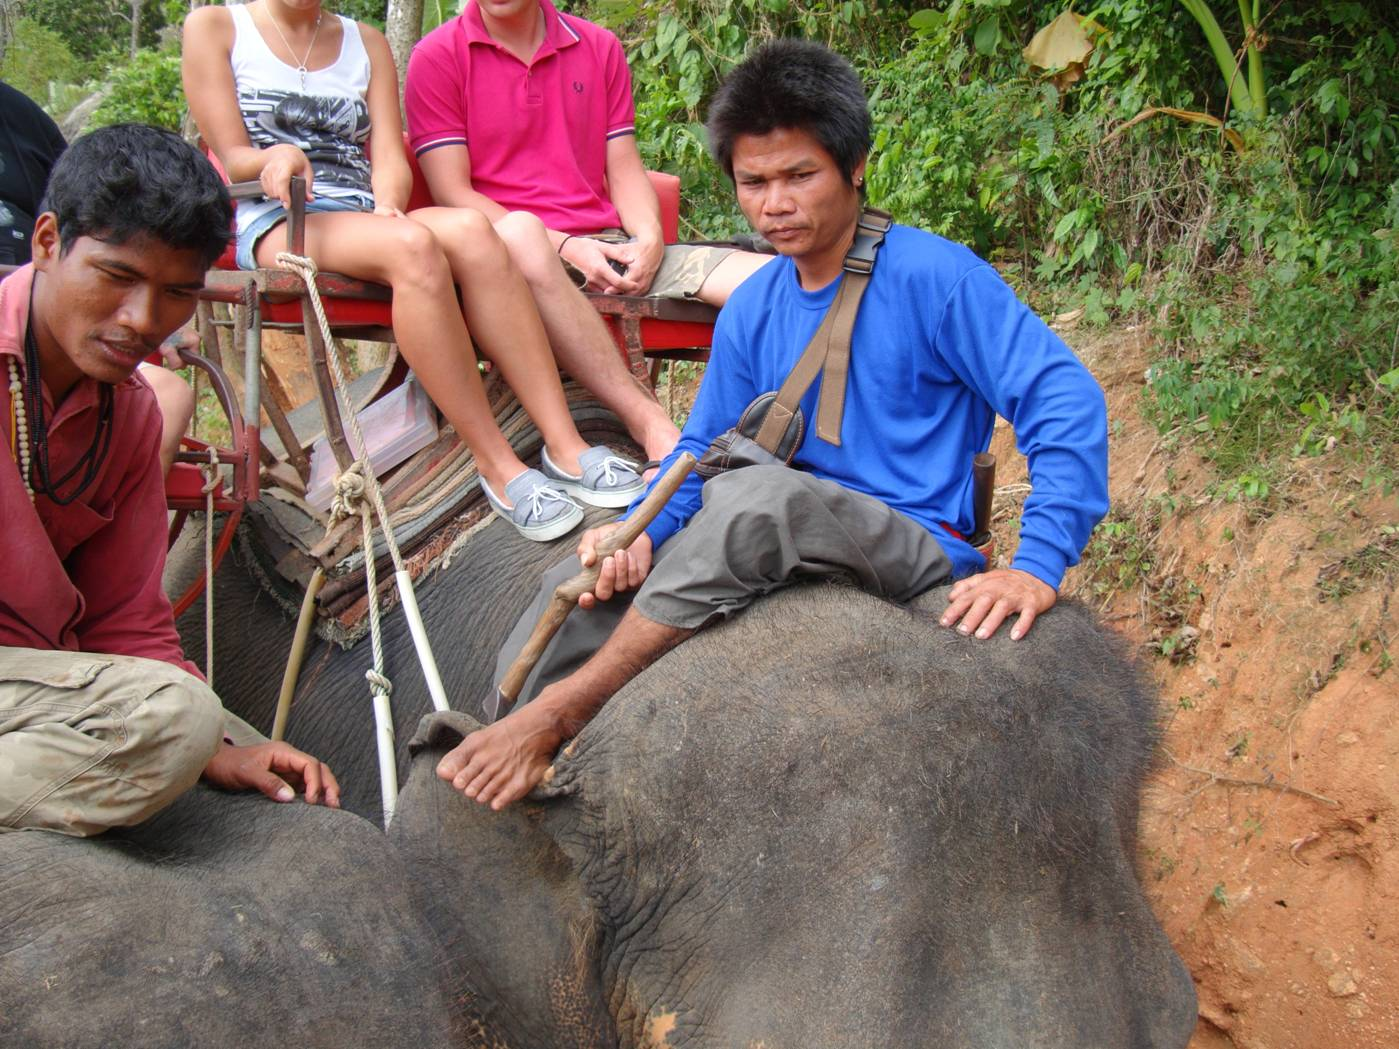 Picture:  The elephant mahouts, Phuket Island, Thailand